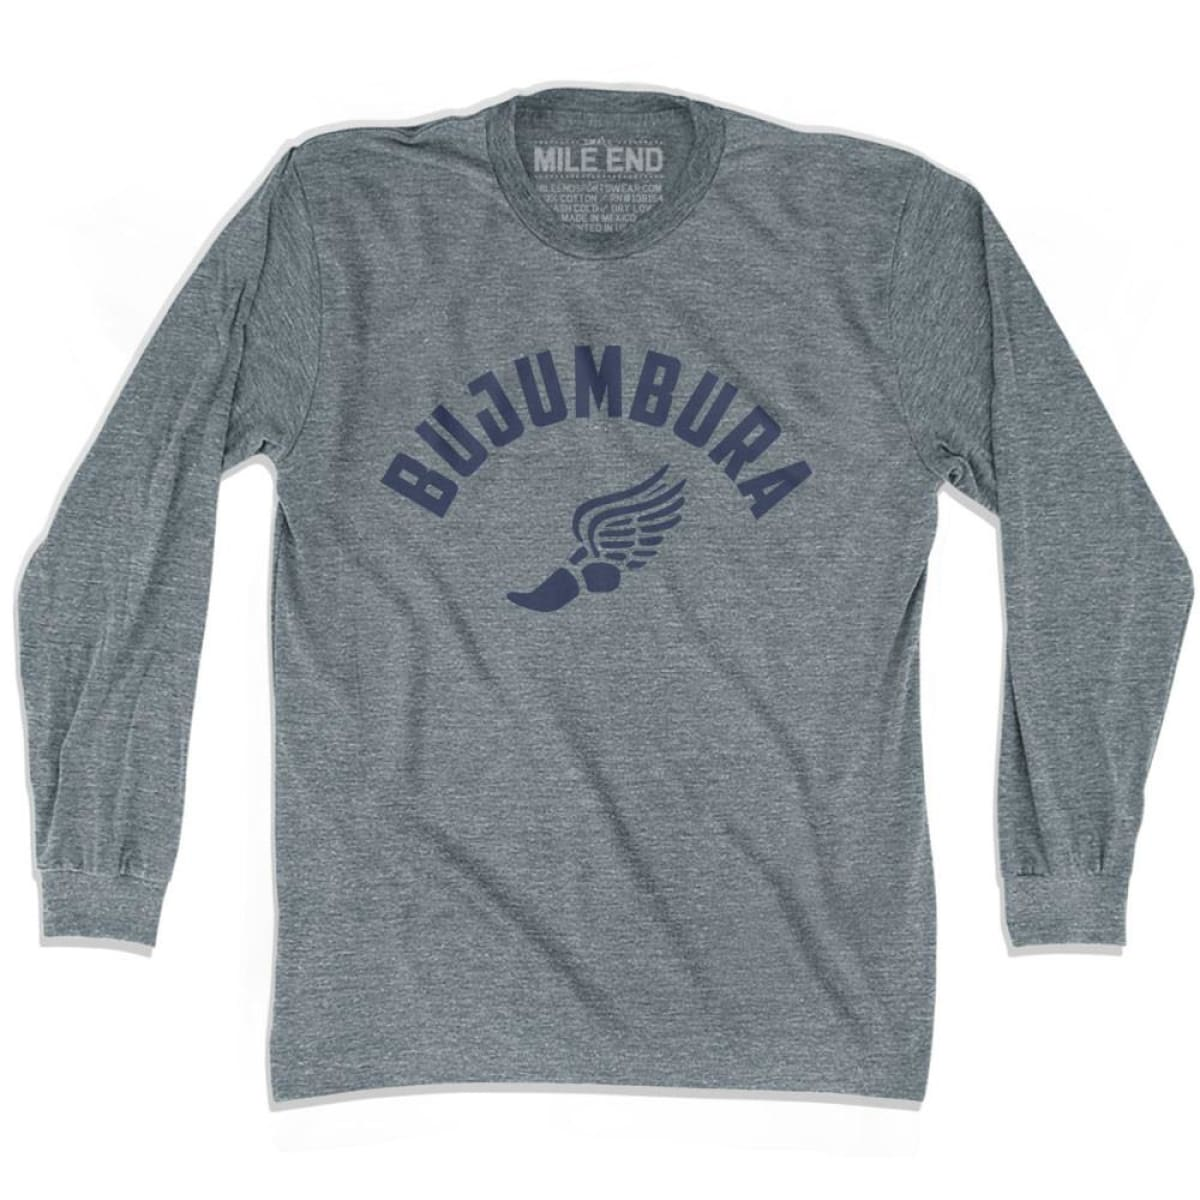 Bujumbura Track Long Sleeve T-shirt - Athletic Grey / Adult X-Small - Mile End Track